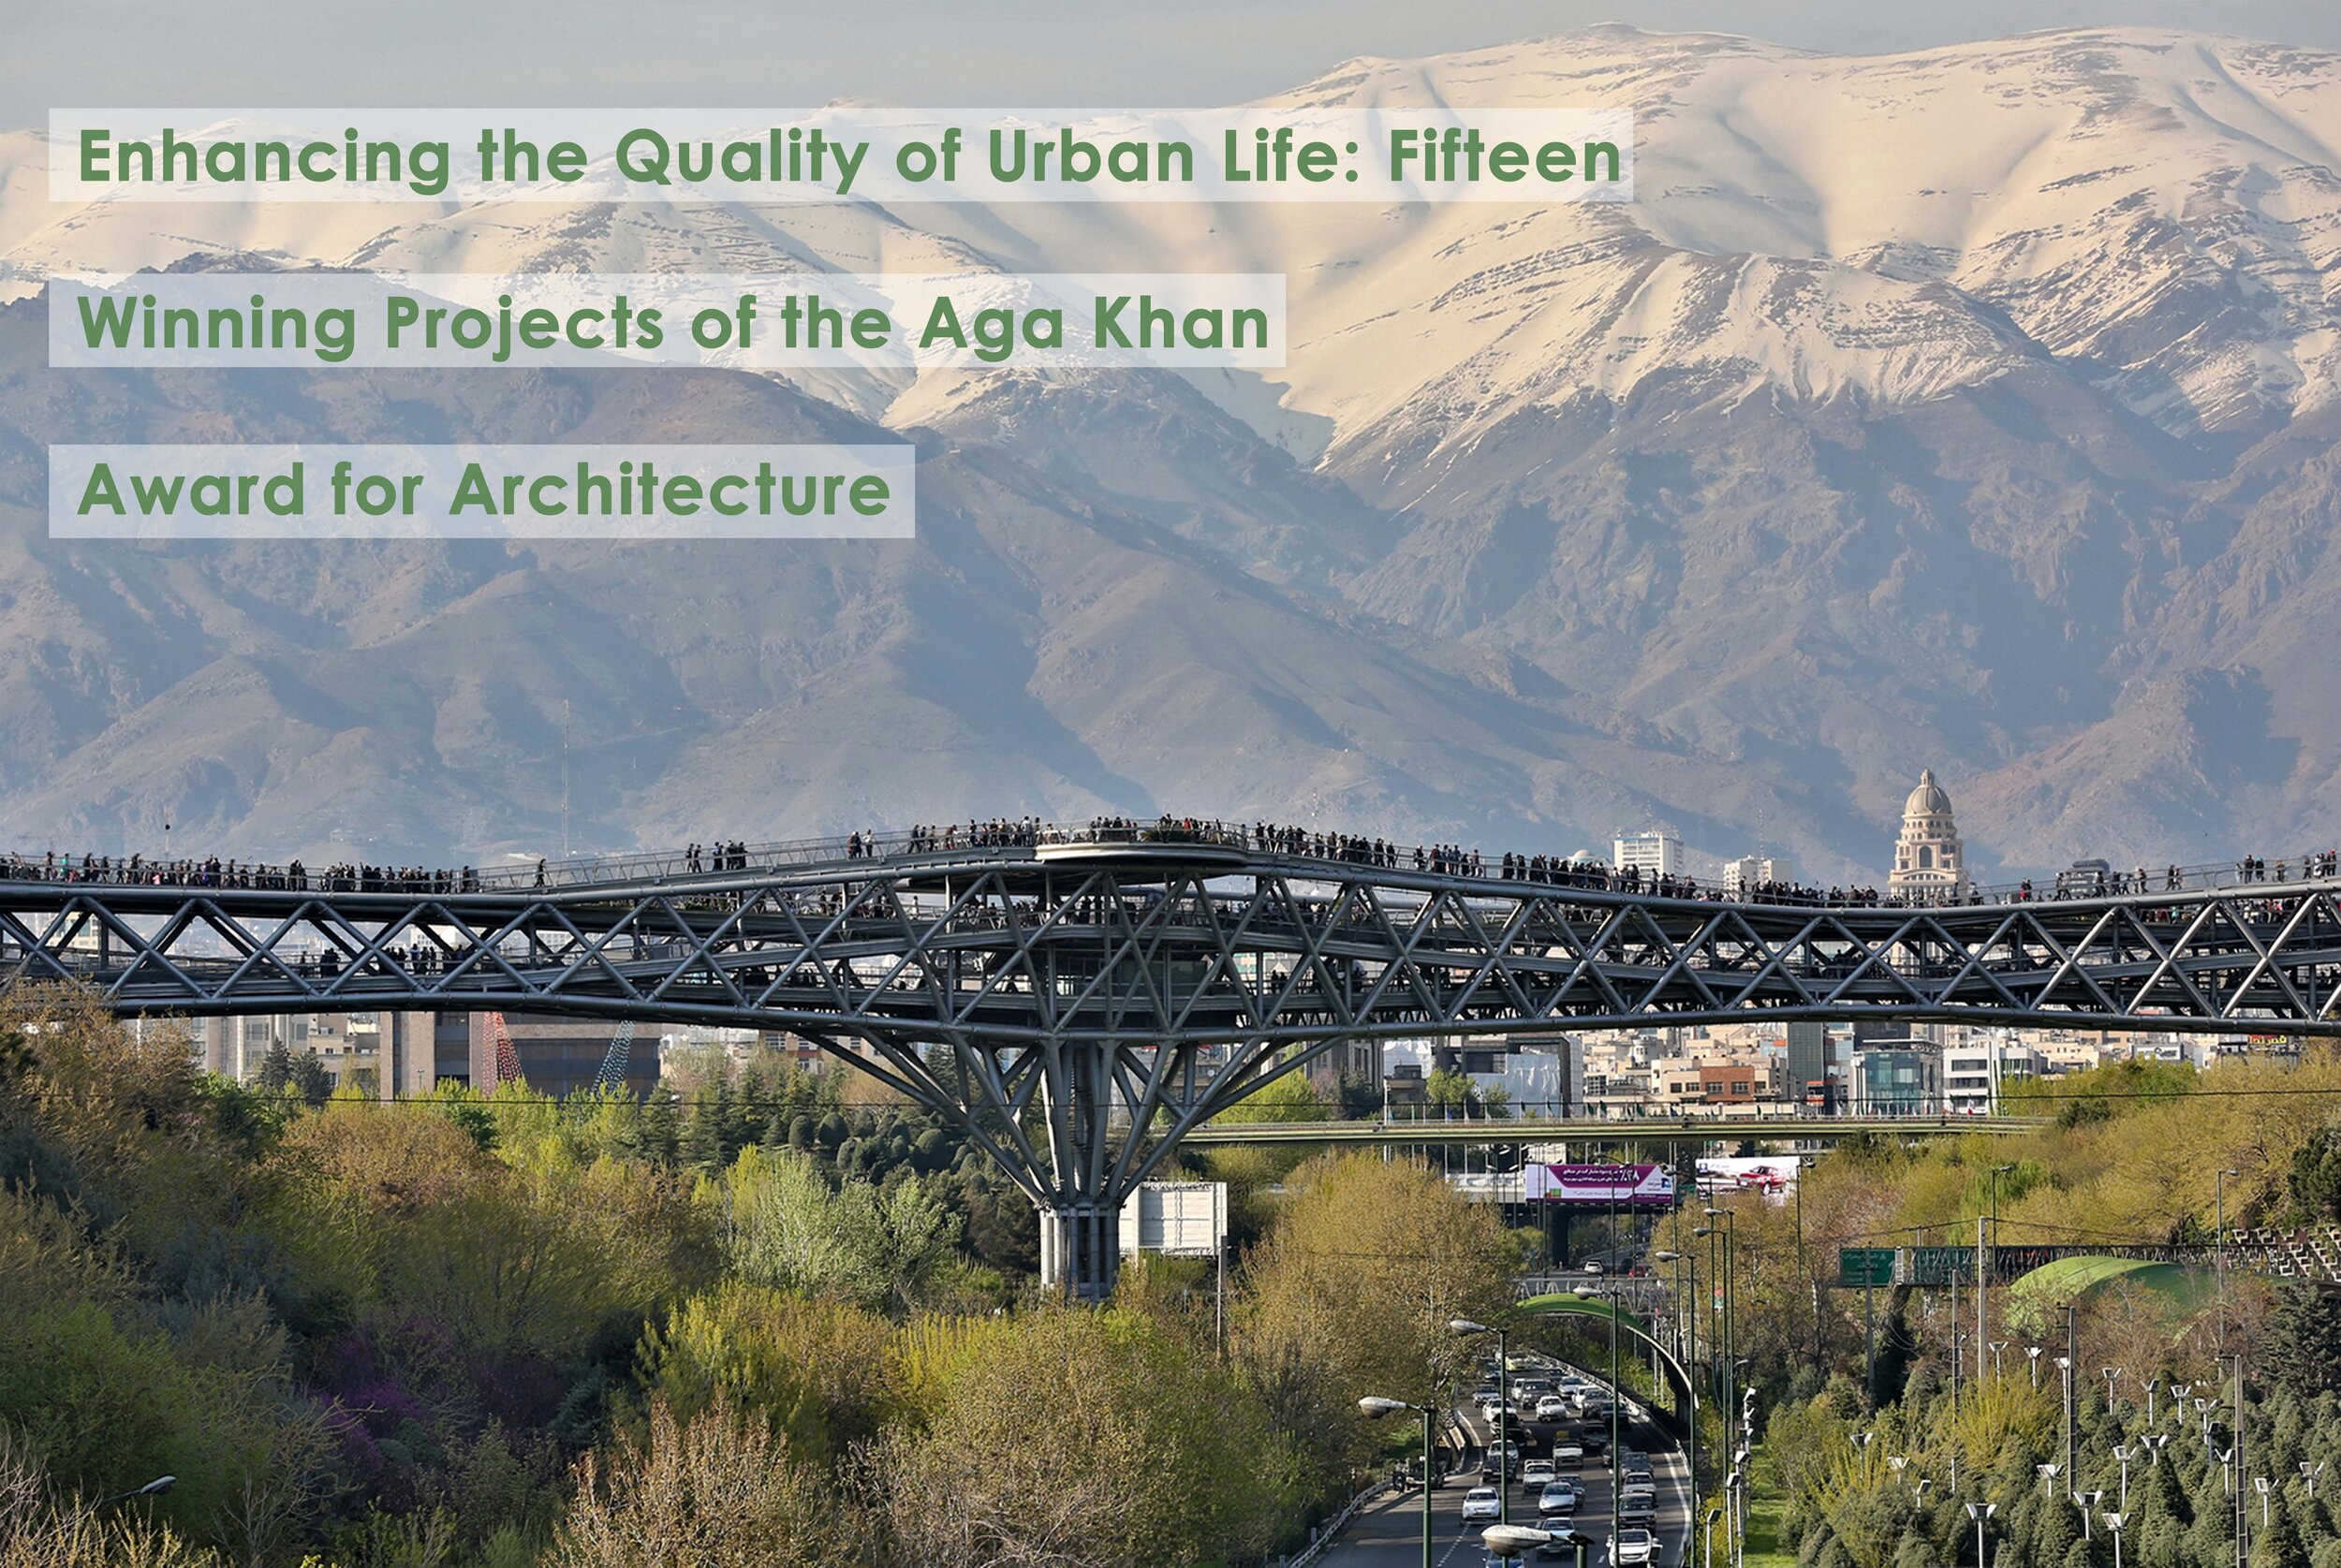 "We are happy to announce the third run of the open online course ""Enhancing the Quality of Urban Life,"" which is produced by the Aga Khan Trust for Culture Education Programme and the Center for the Study of the Built Environment (CSBE).  In this course, its lecturers Mohammad al-Asad, the Director of CSBE, and Lara Zureikat, the Associate Director of CSBE, examine the challenges of enhancing the quality of urban life. They address fifteen projects with an urban impact from Europe, Africa, and Asia that have received the Aga Khan Award for Architecture over the past four decades. Although these projects have primarily focused on Muslim communities, the messages they communicate are universal.  You can register for this free course through the following link:  https://bit.ly/2DGP6KI"